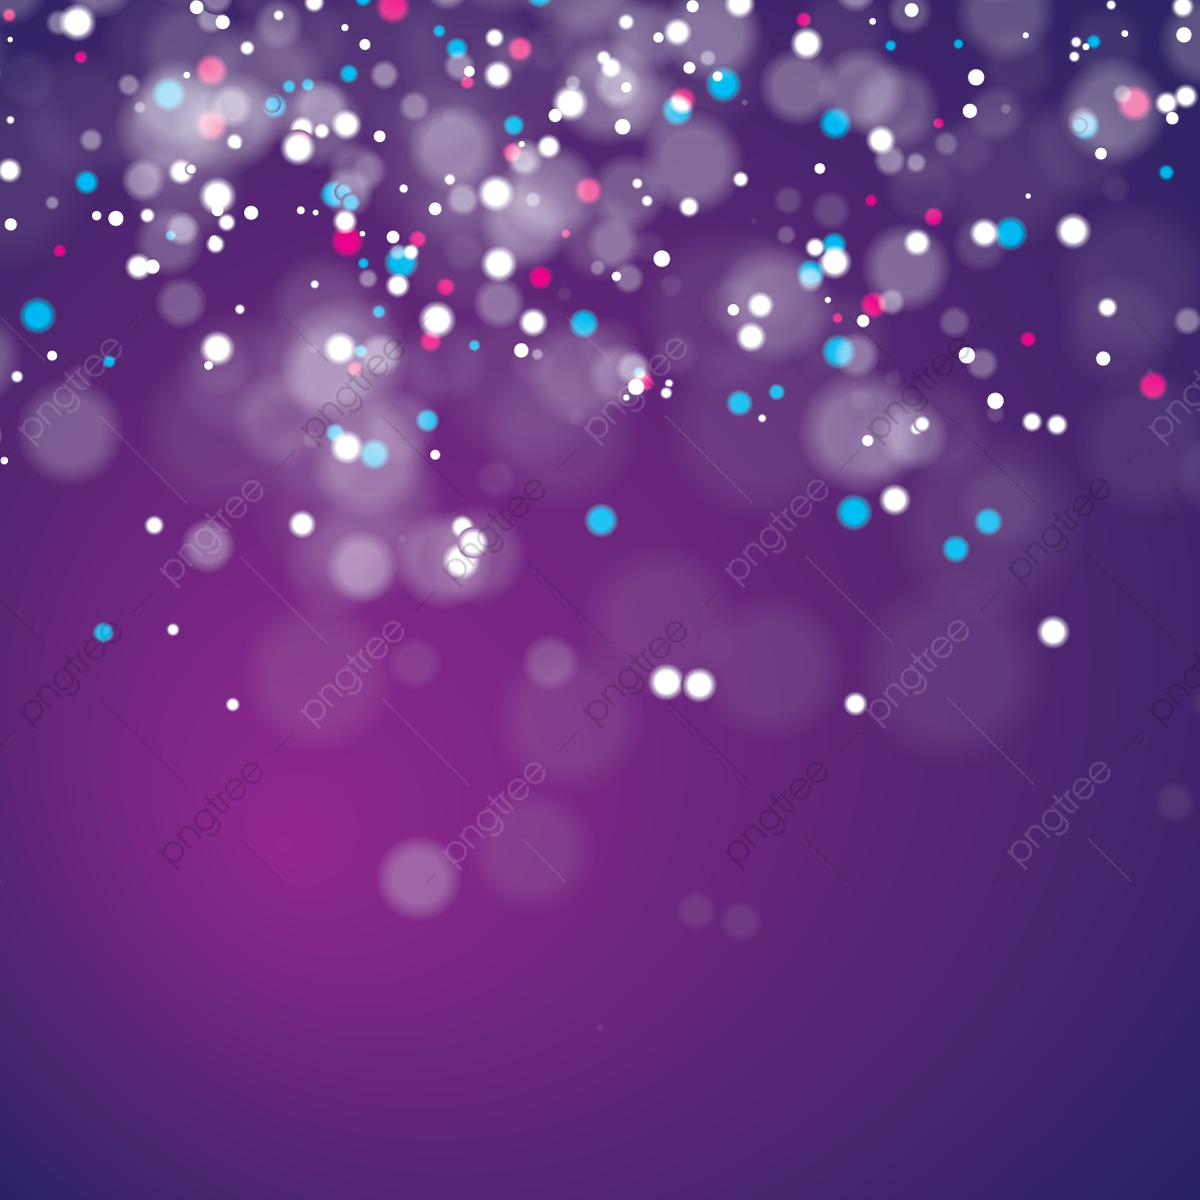 Abstract Bokeh Background Vector Purple Glitter Space Png